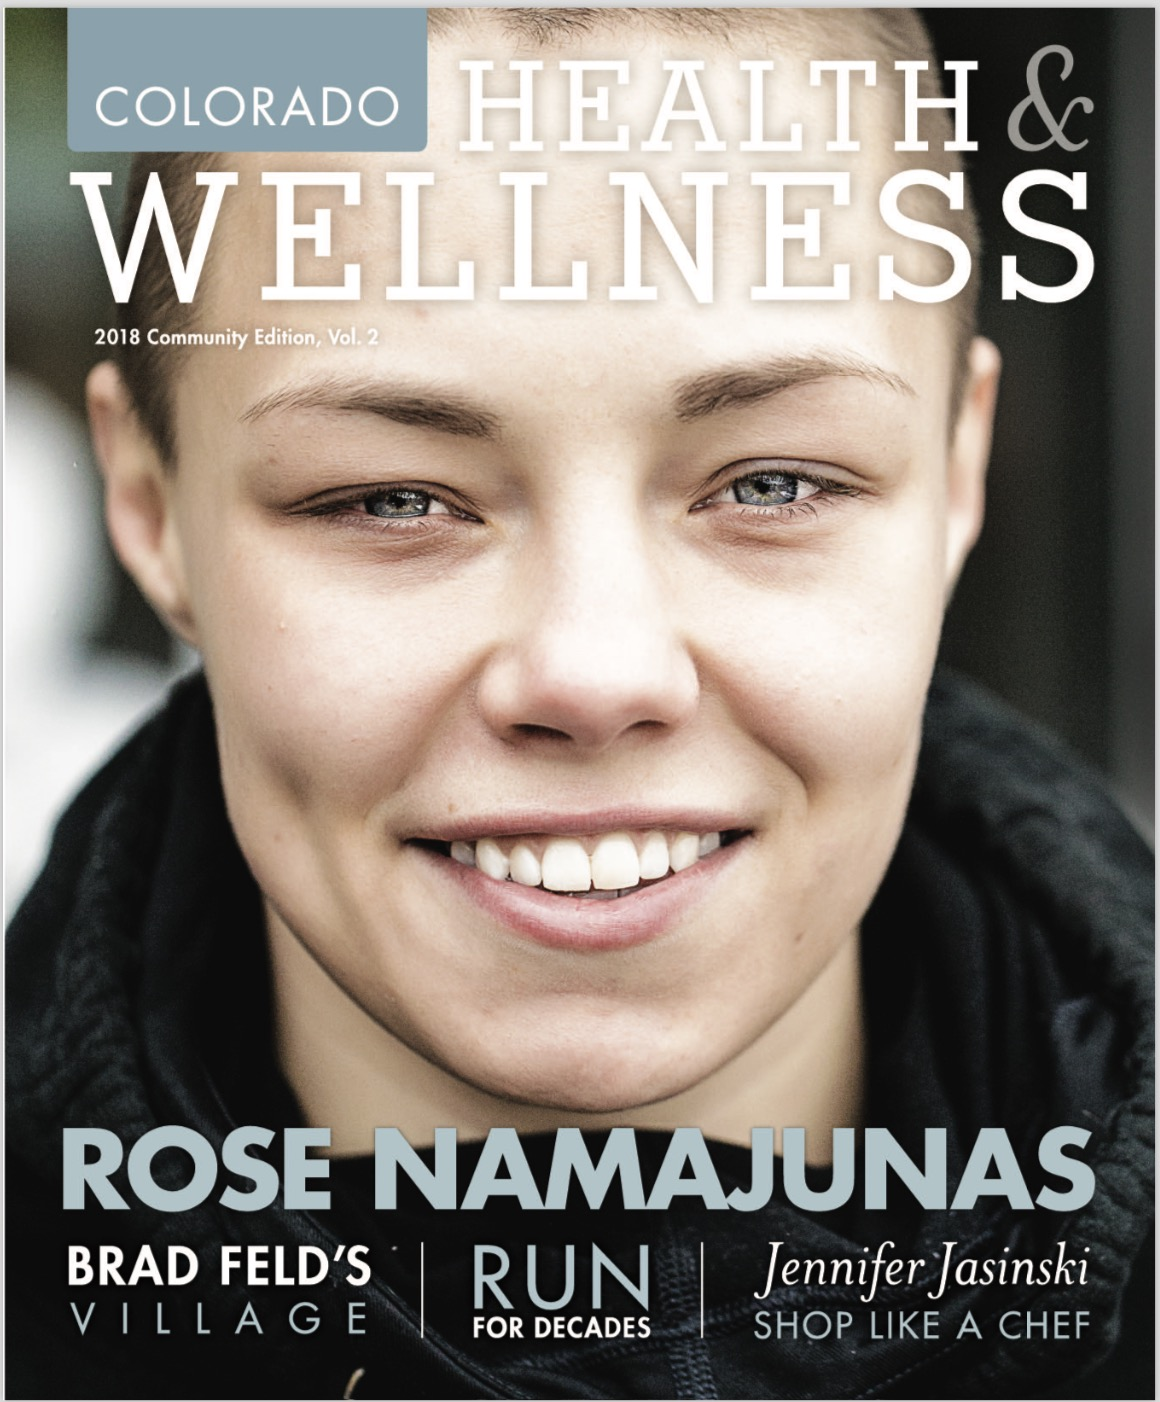 Rose Namajunas Colorado Health & Wellness magazine